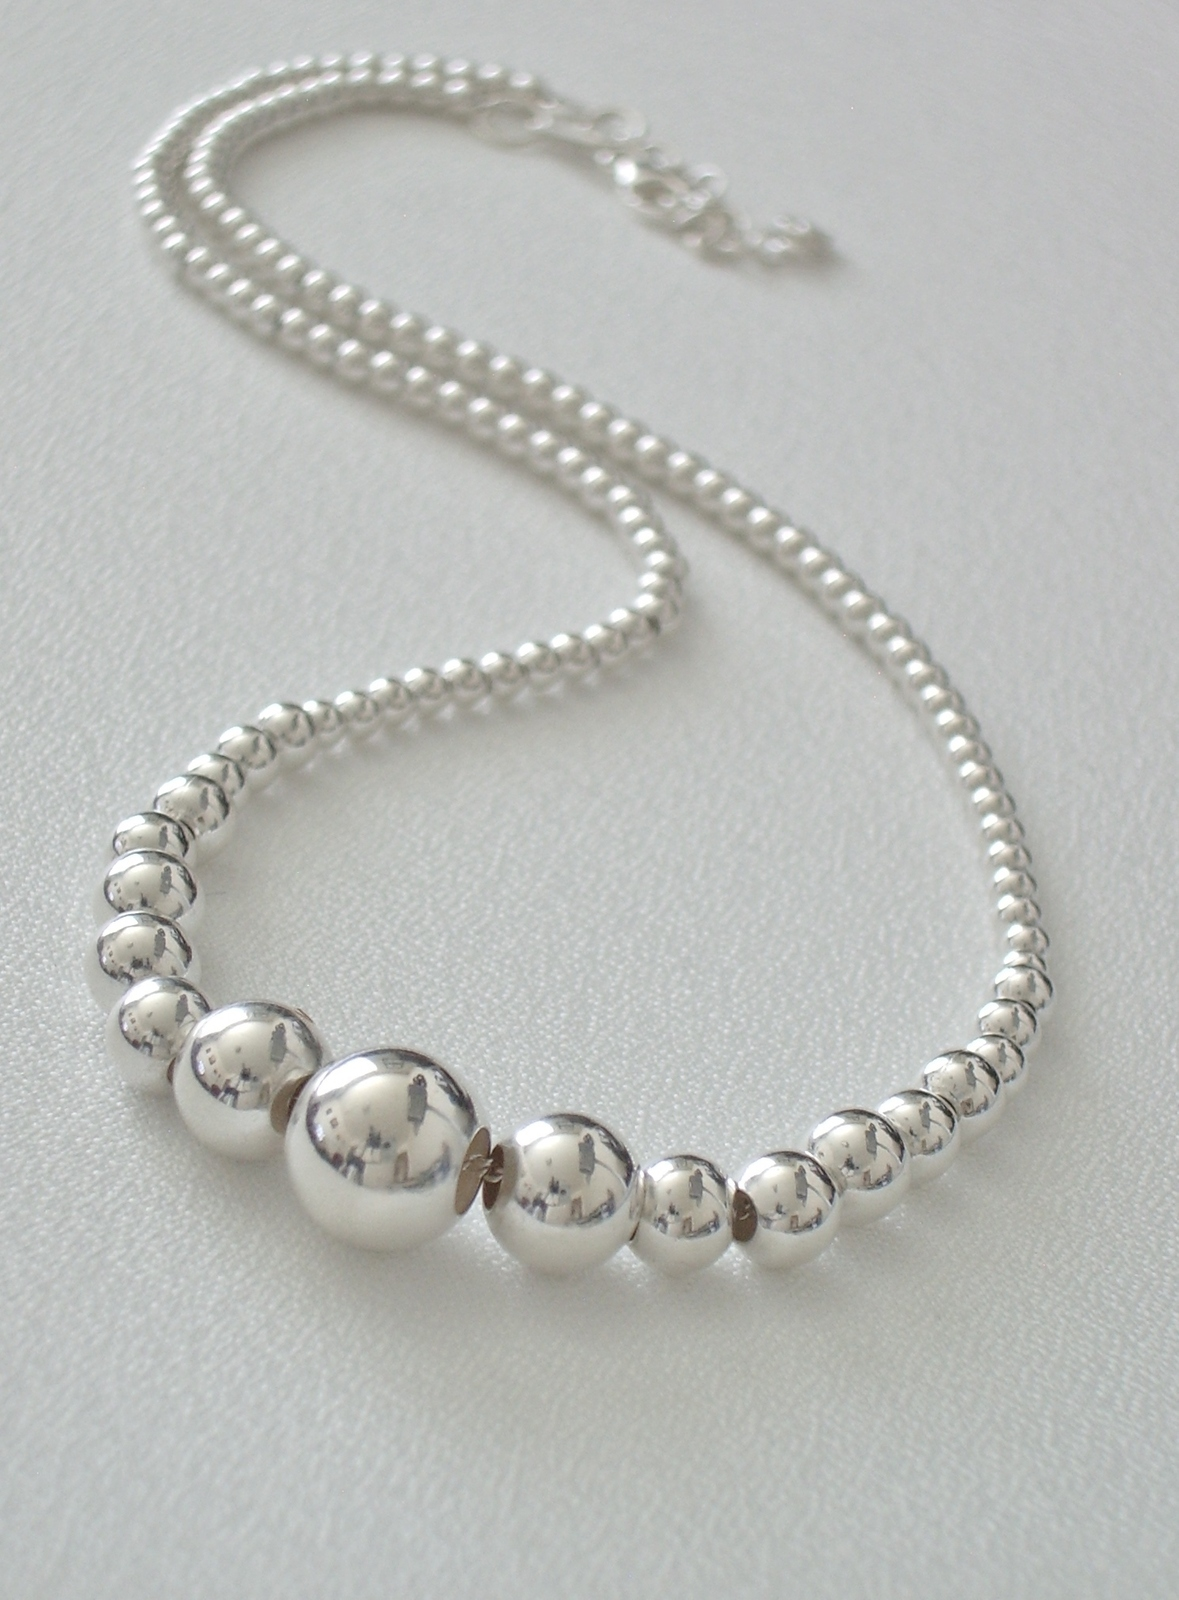 Primary image for Sterling Silver Graduated Bead Necklace